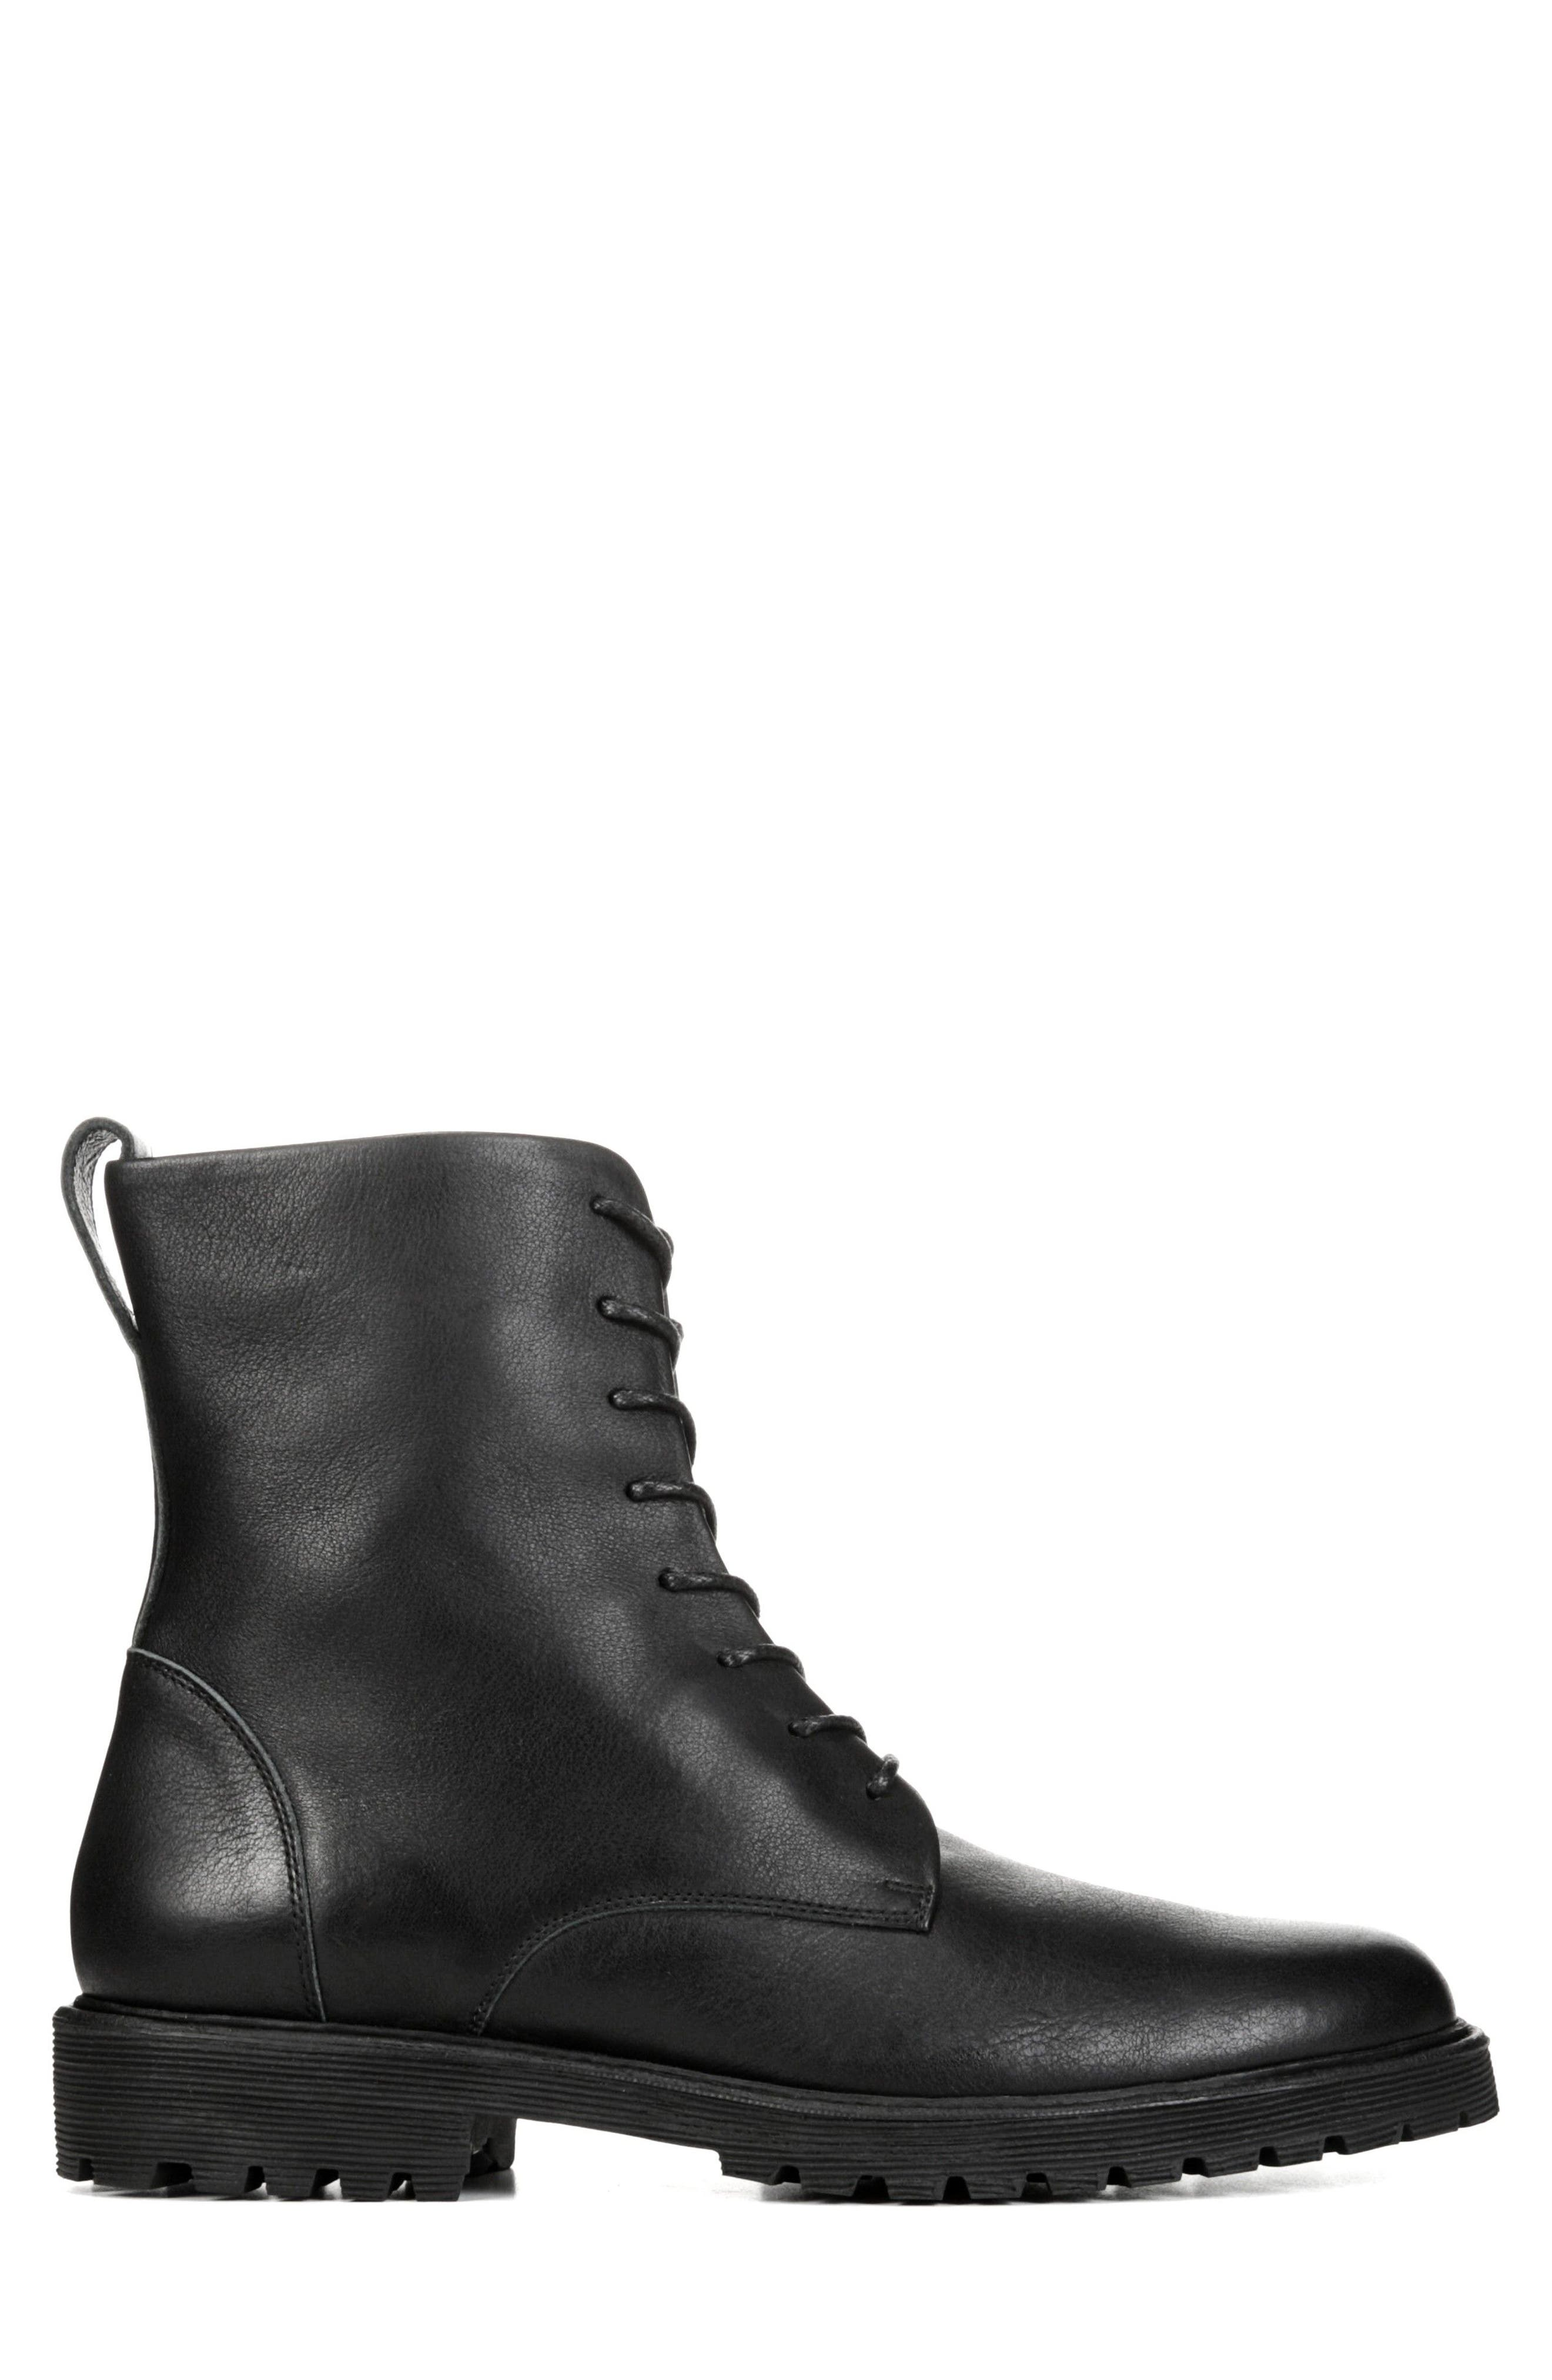 Brigade Plain Toe Boot,                             Alternate thumbnail 3, color,                             Black